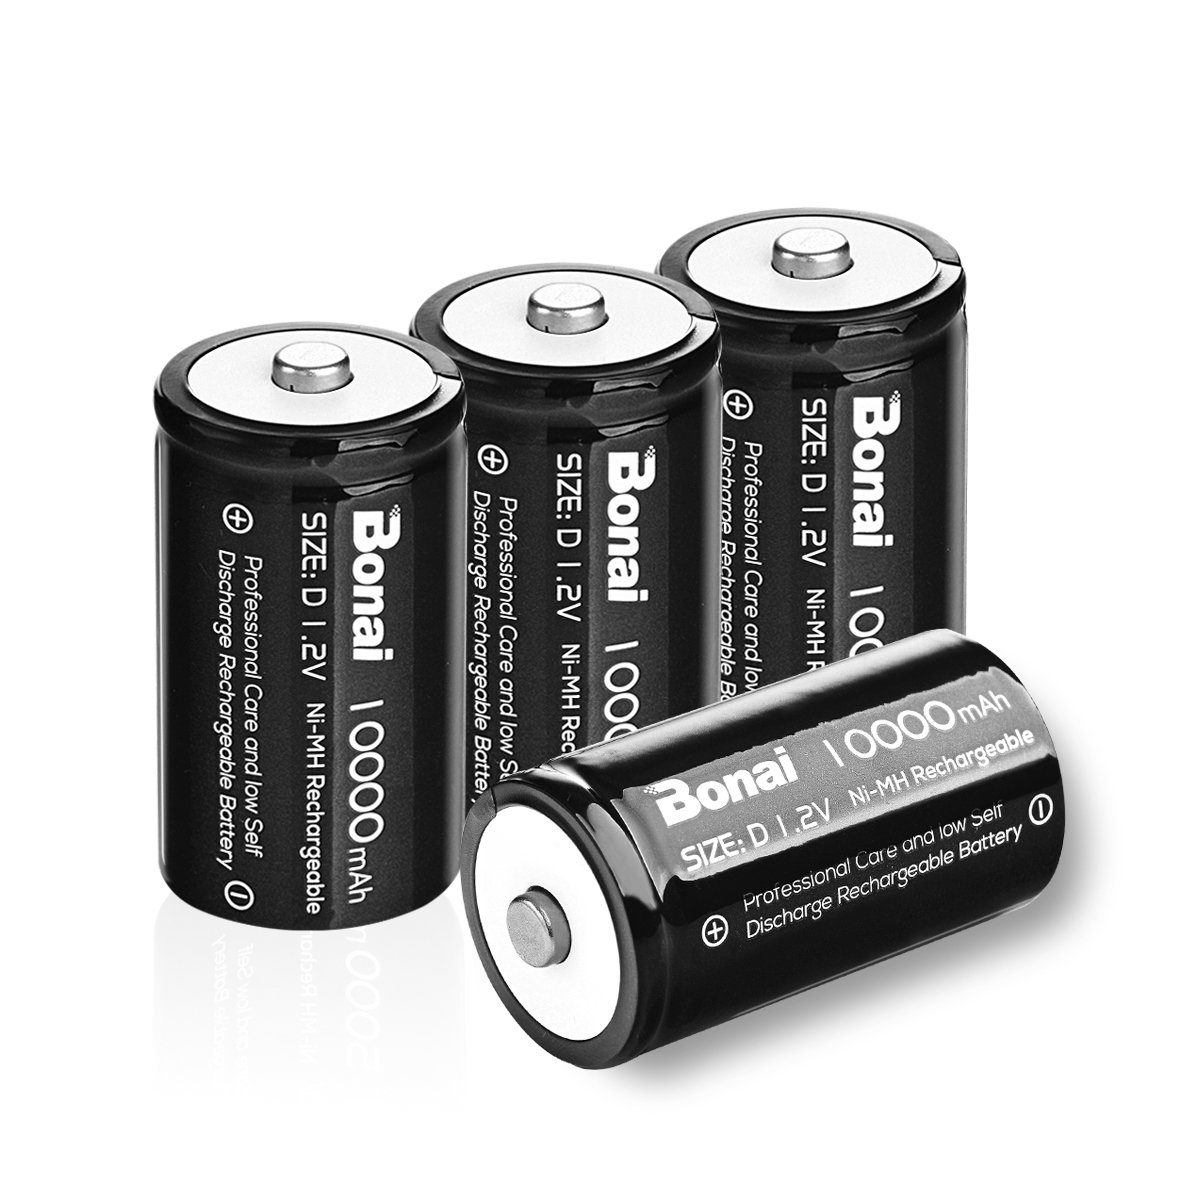 BONAI Rechargeable D Cells 10,000mAh 1.2V Ni-MH High Capacity High Rate D Size Battery (4-Counts)